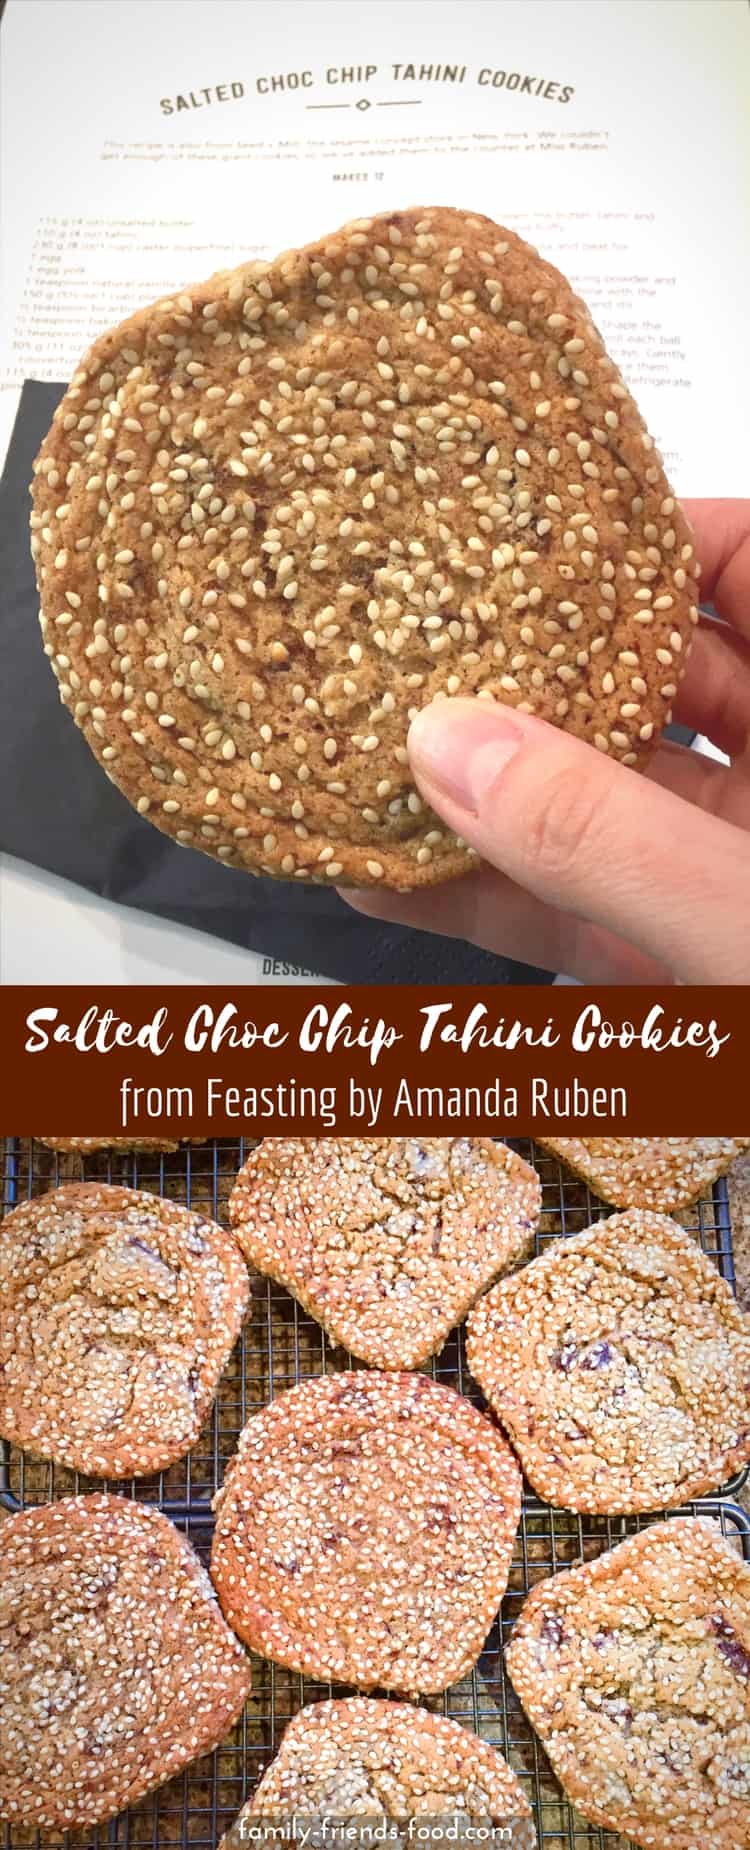 Studded with dark chocolate chunks, these delicious tahini cookies are sweet, soft and oh so moreish! Recipe reproduced (with permission) from Feasting by Amanda Ruben + read the full book review here. #cookies #tahini #sesame #sesameseeds #tahinicookies #chocolate #baking